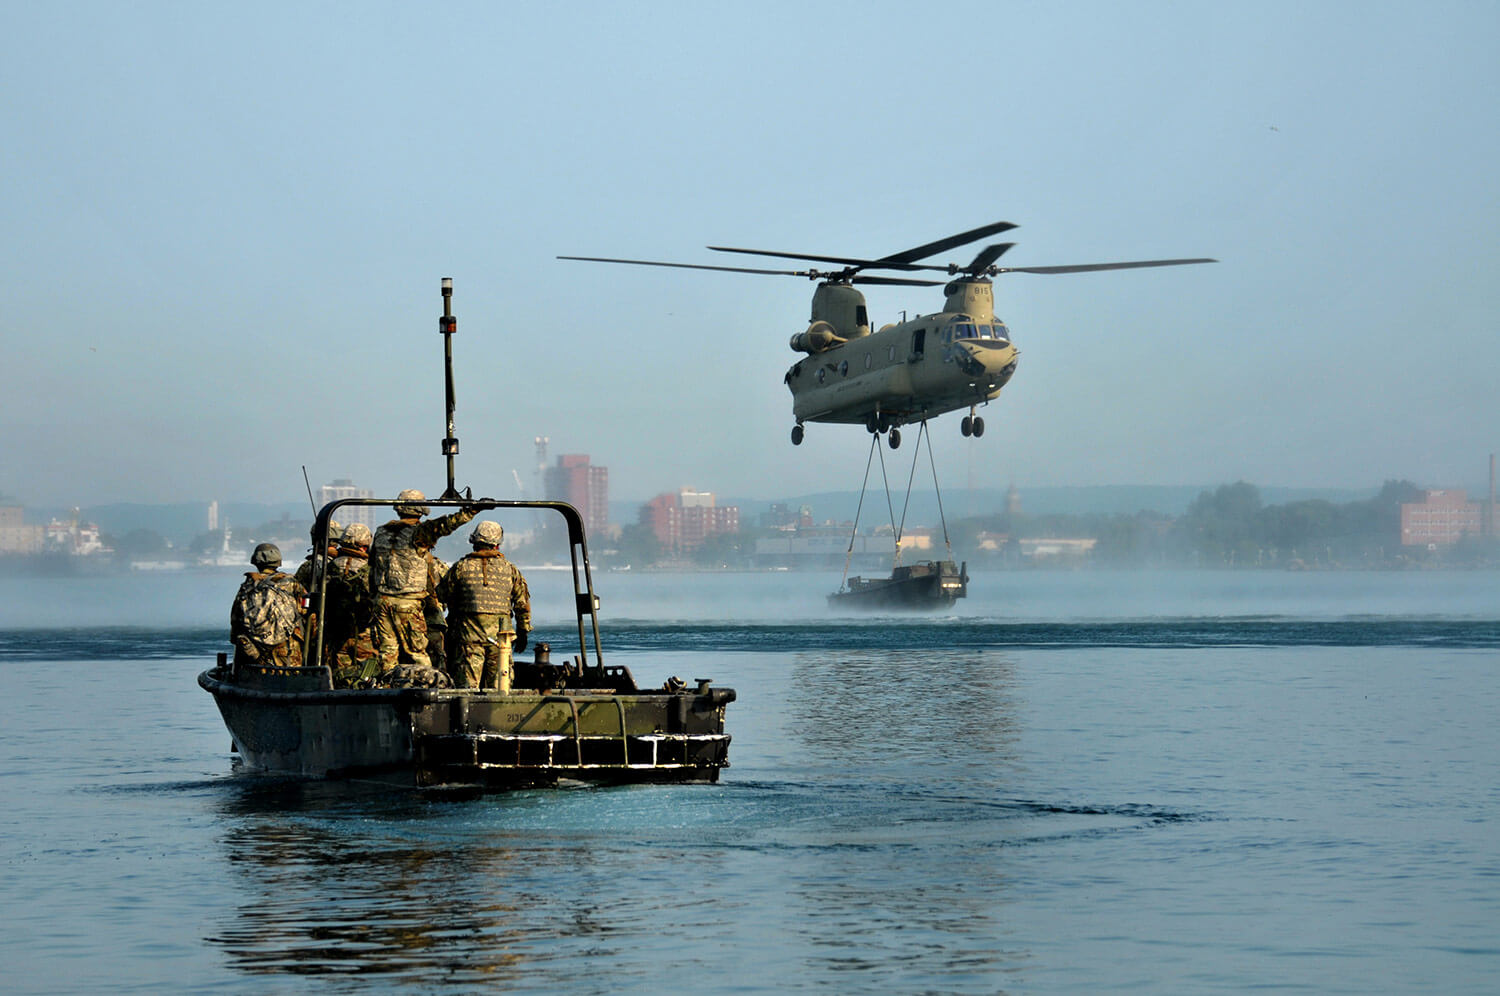 Engineers from Michigan Army National Guard's 1437th Multi-Role Bridge Company, based out of Sault Saint Marie, Mich., wait as a Chinook from B Company, 3rd Battalion, 238th Aviation Regiment, based out of Grand Ledge, Mich., makes an aerial delivery of sling loaded components for an improved float bridge, also known as a ribbon bridge, on the St. Mary's River. The Soldiers of the 1437th, working from 500-hp MK-II Bridge Erection Boats, maneuvered the separate pieces to rehearse the assembling of a sturdy floating bridge during a training scenario in August of this year. Michigan Army National Guard photo by SFC Helen Miller